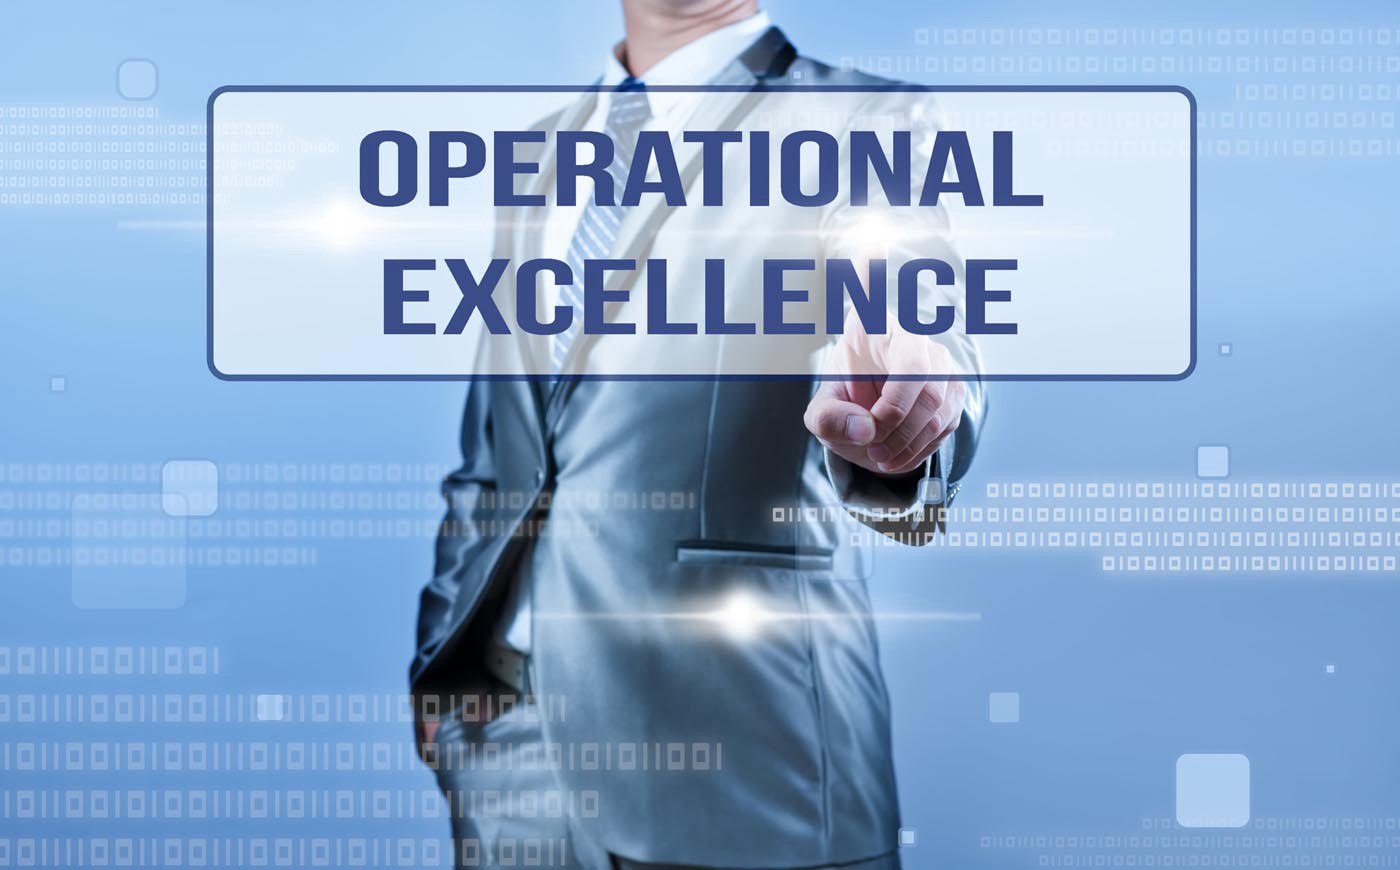 Free webinar in operational excellence